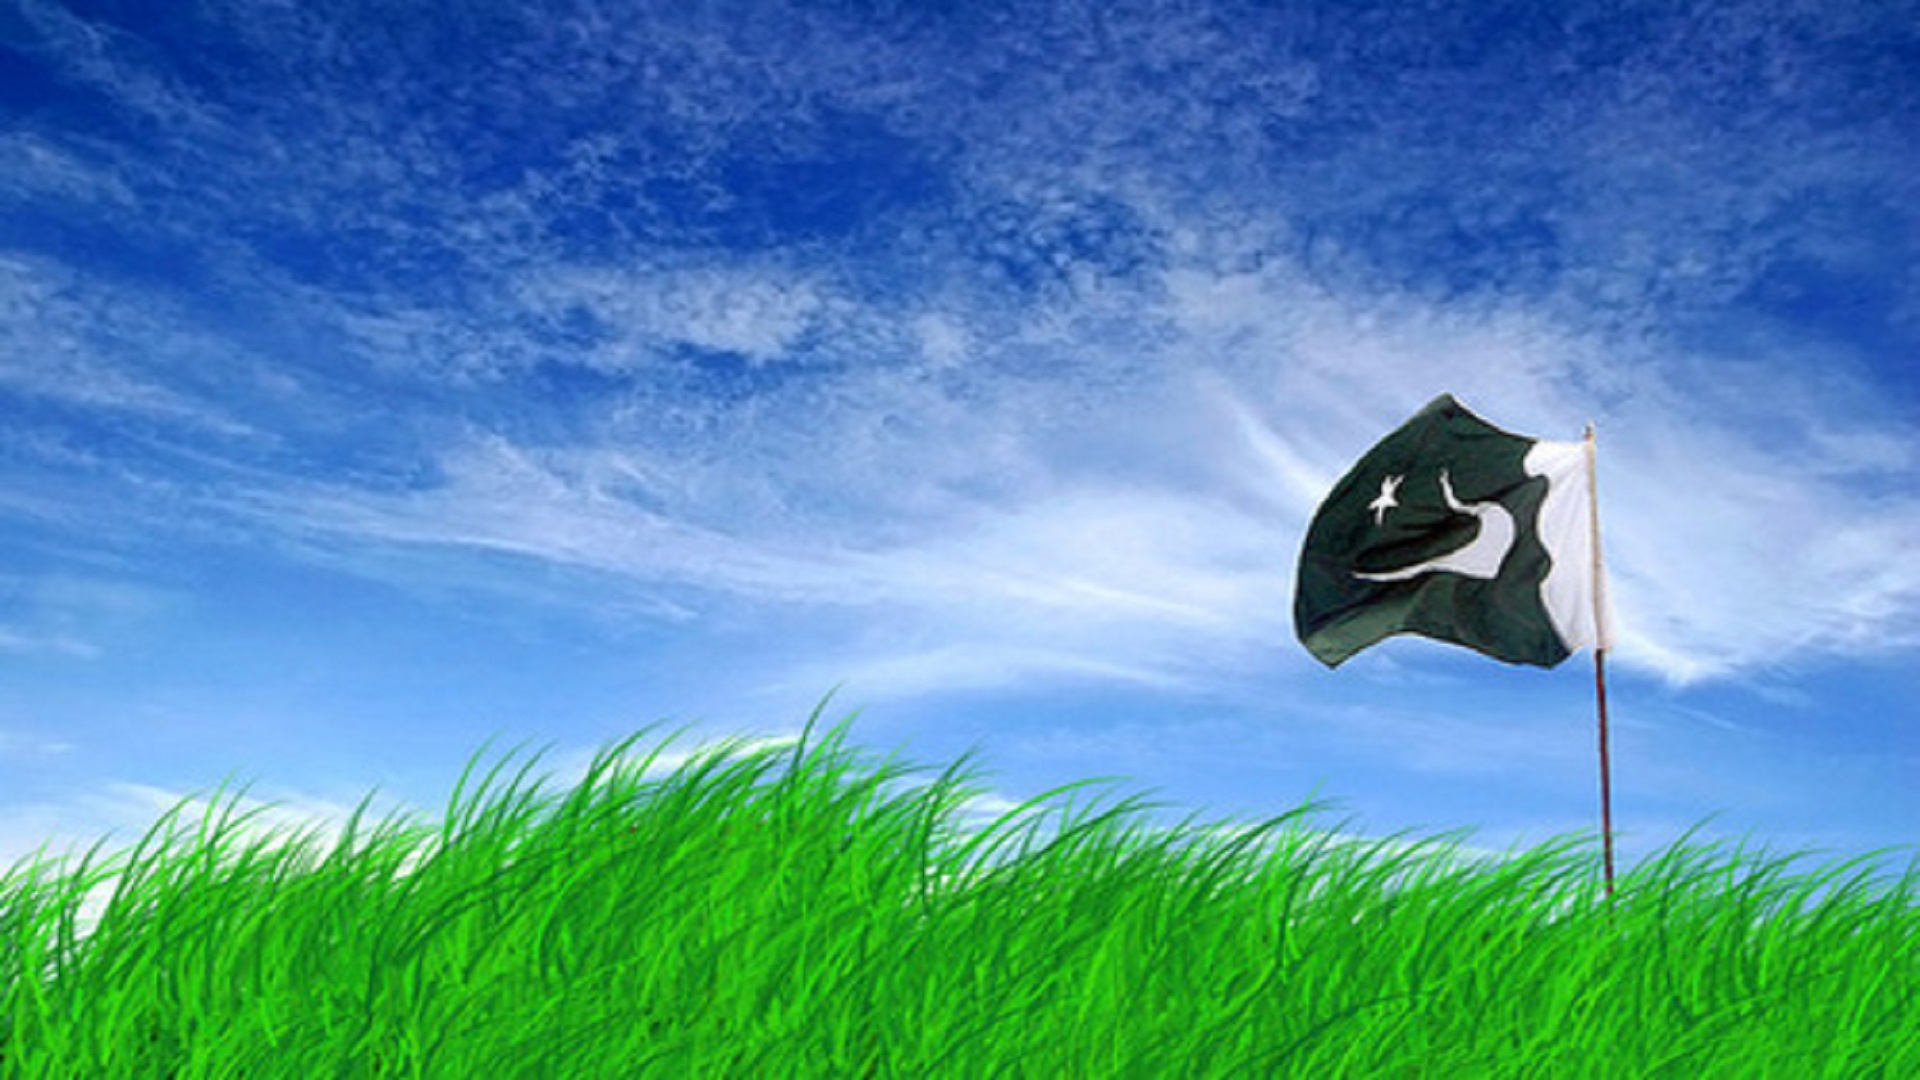 beautiful wallpapers hd free pakistani flag hd wallpaperbeautiful wallpapers hd free pakistani flag